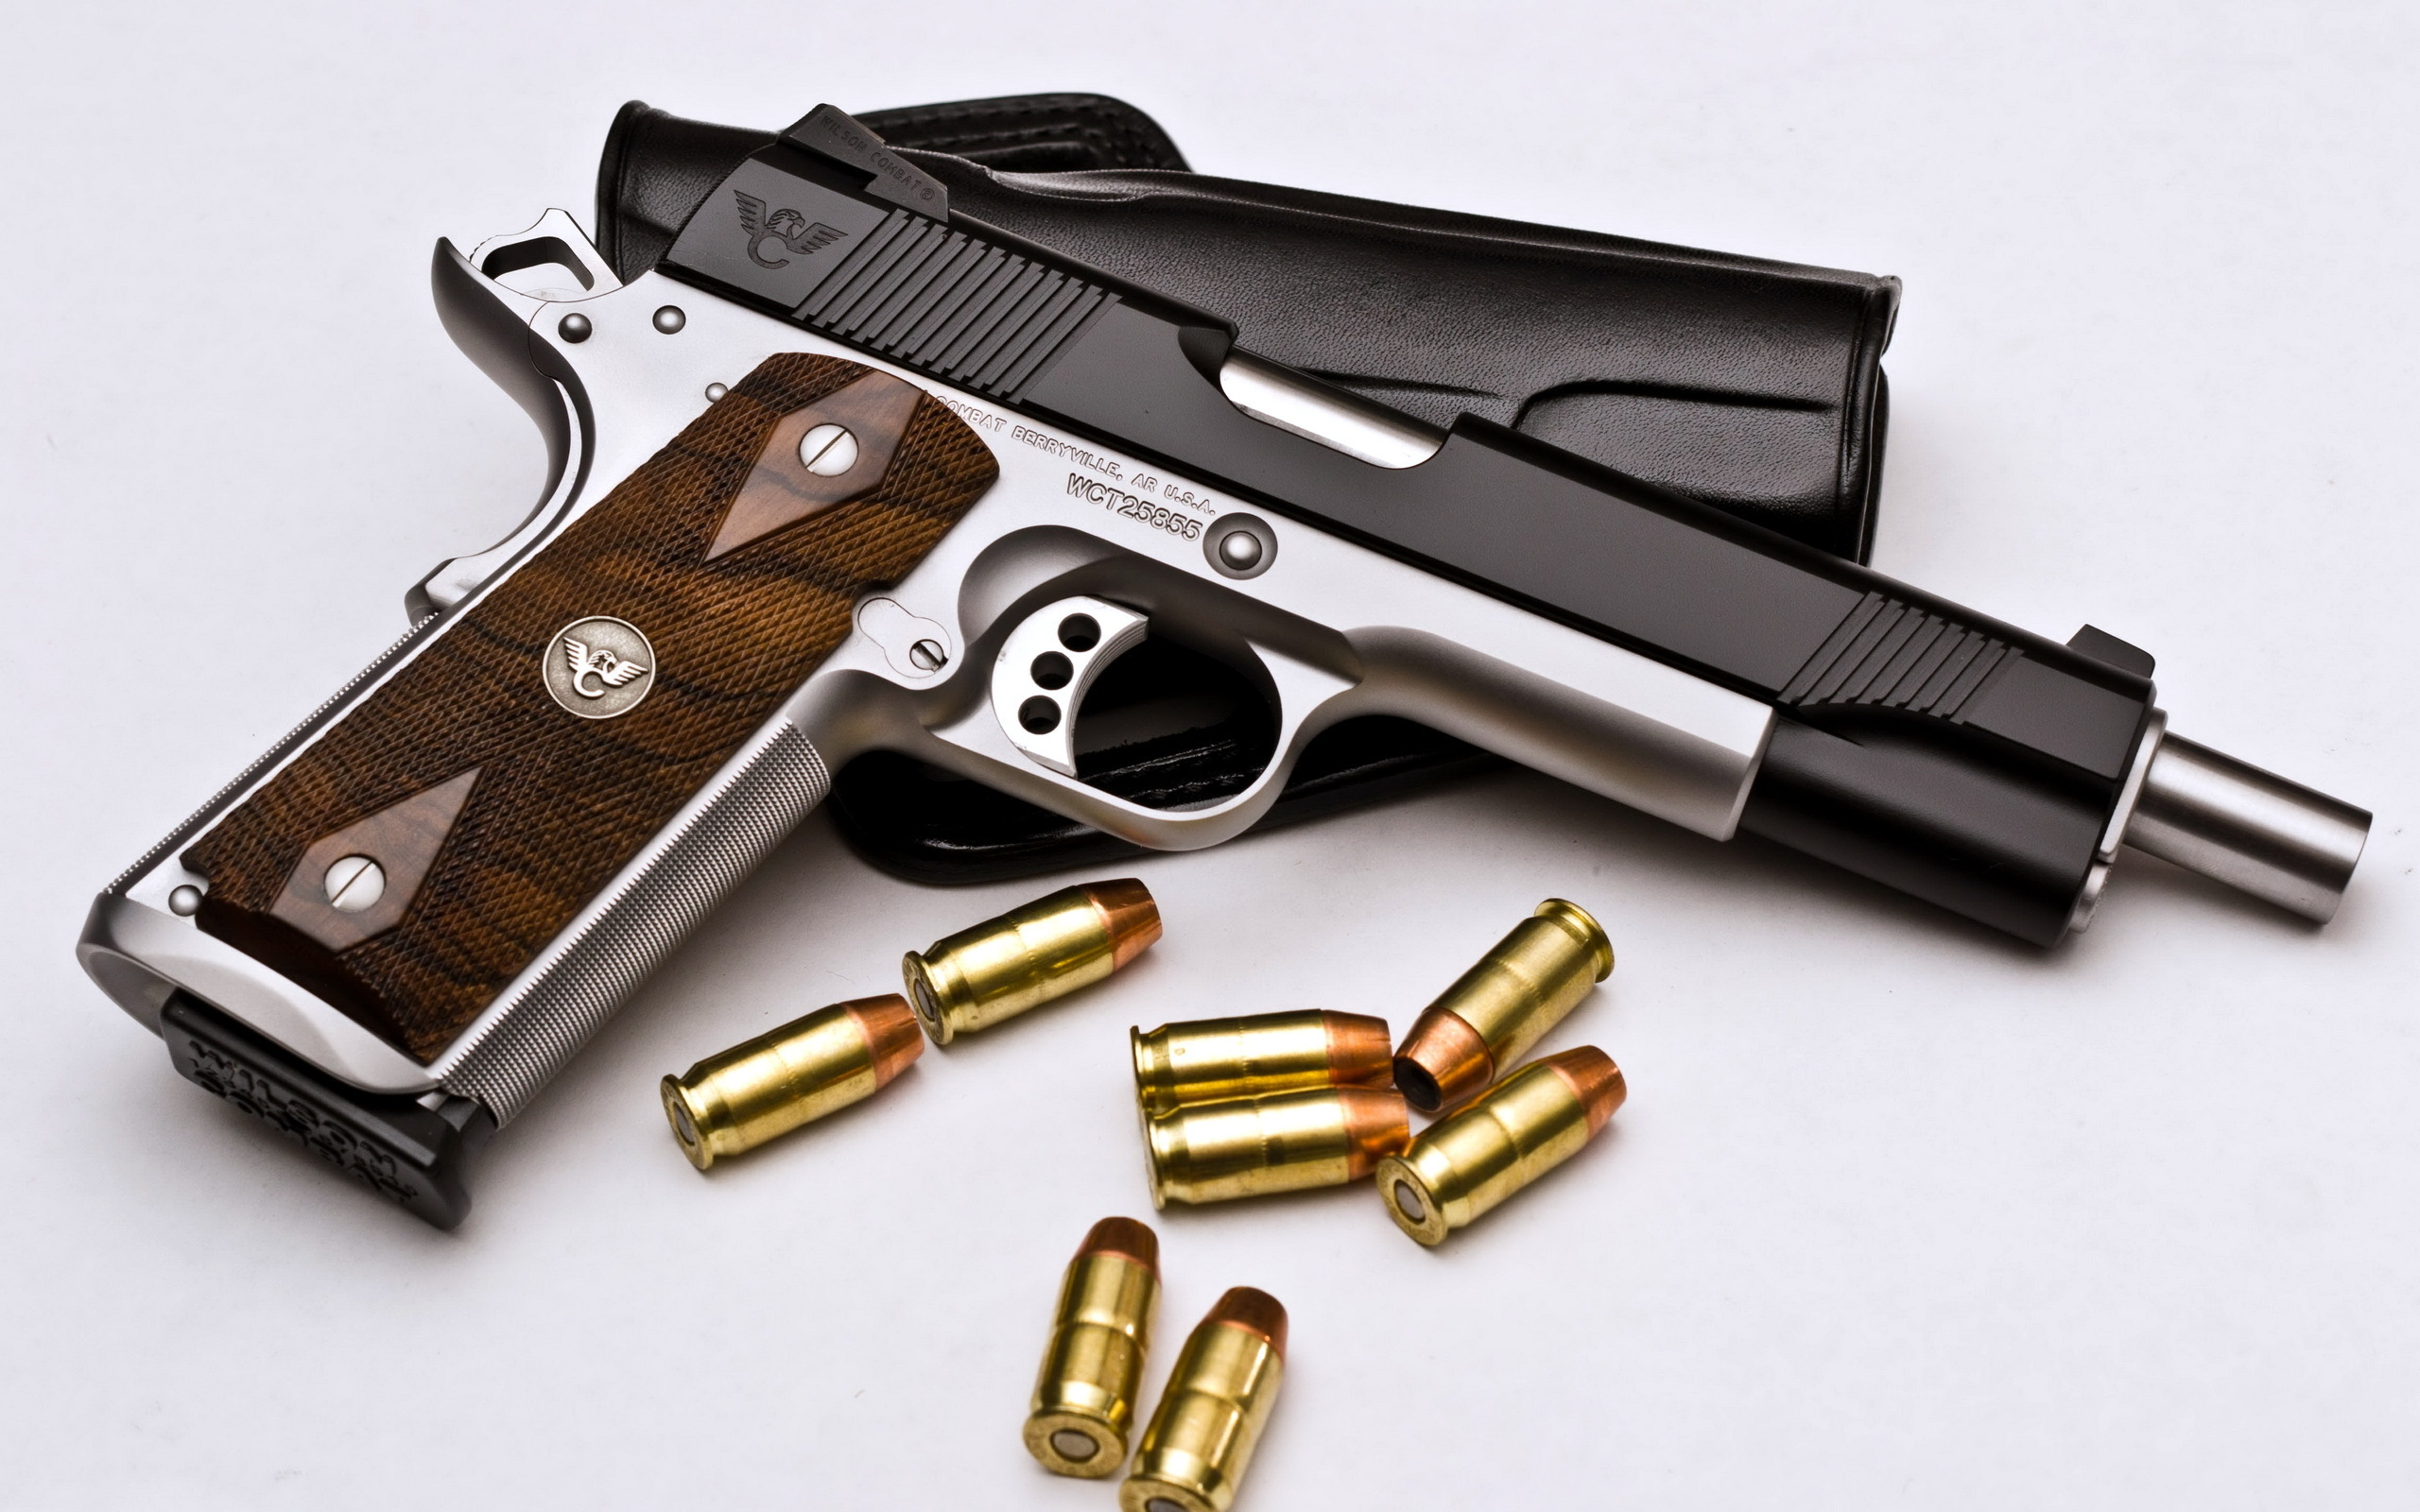 Weapons   Wilson Combat Pistol Weapon Pistol Wallpaper 2560x1600